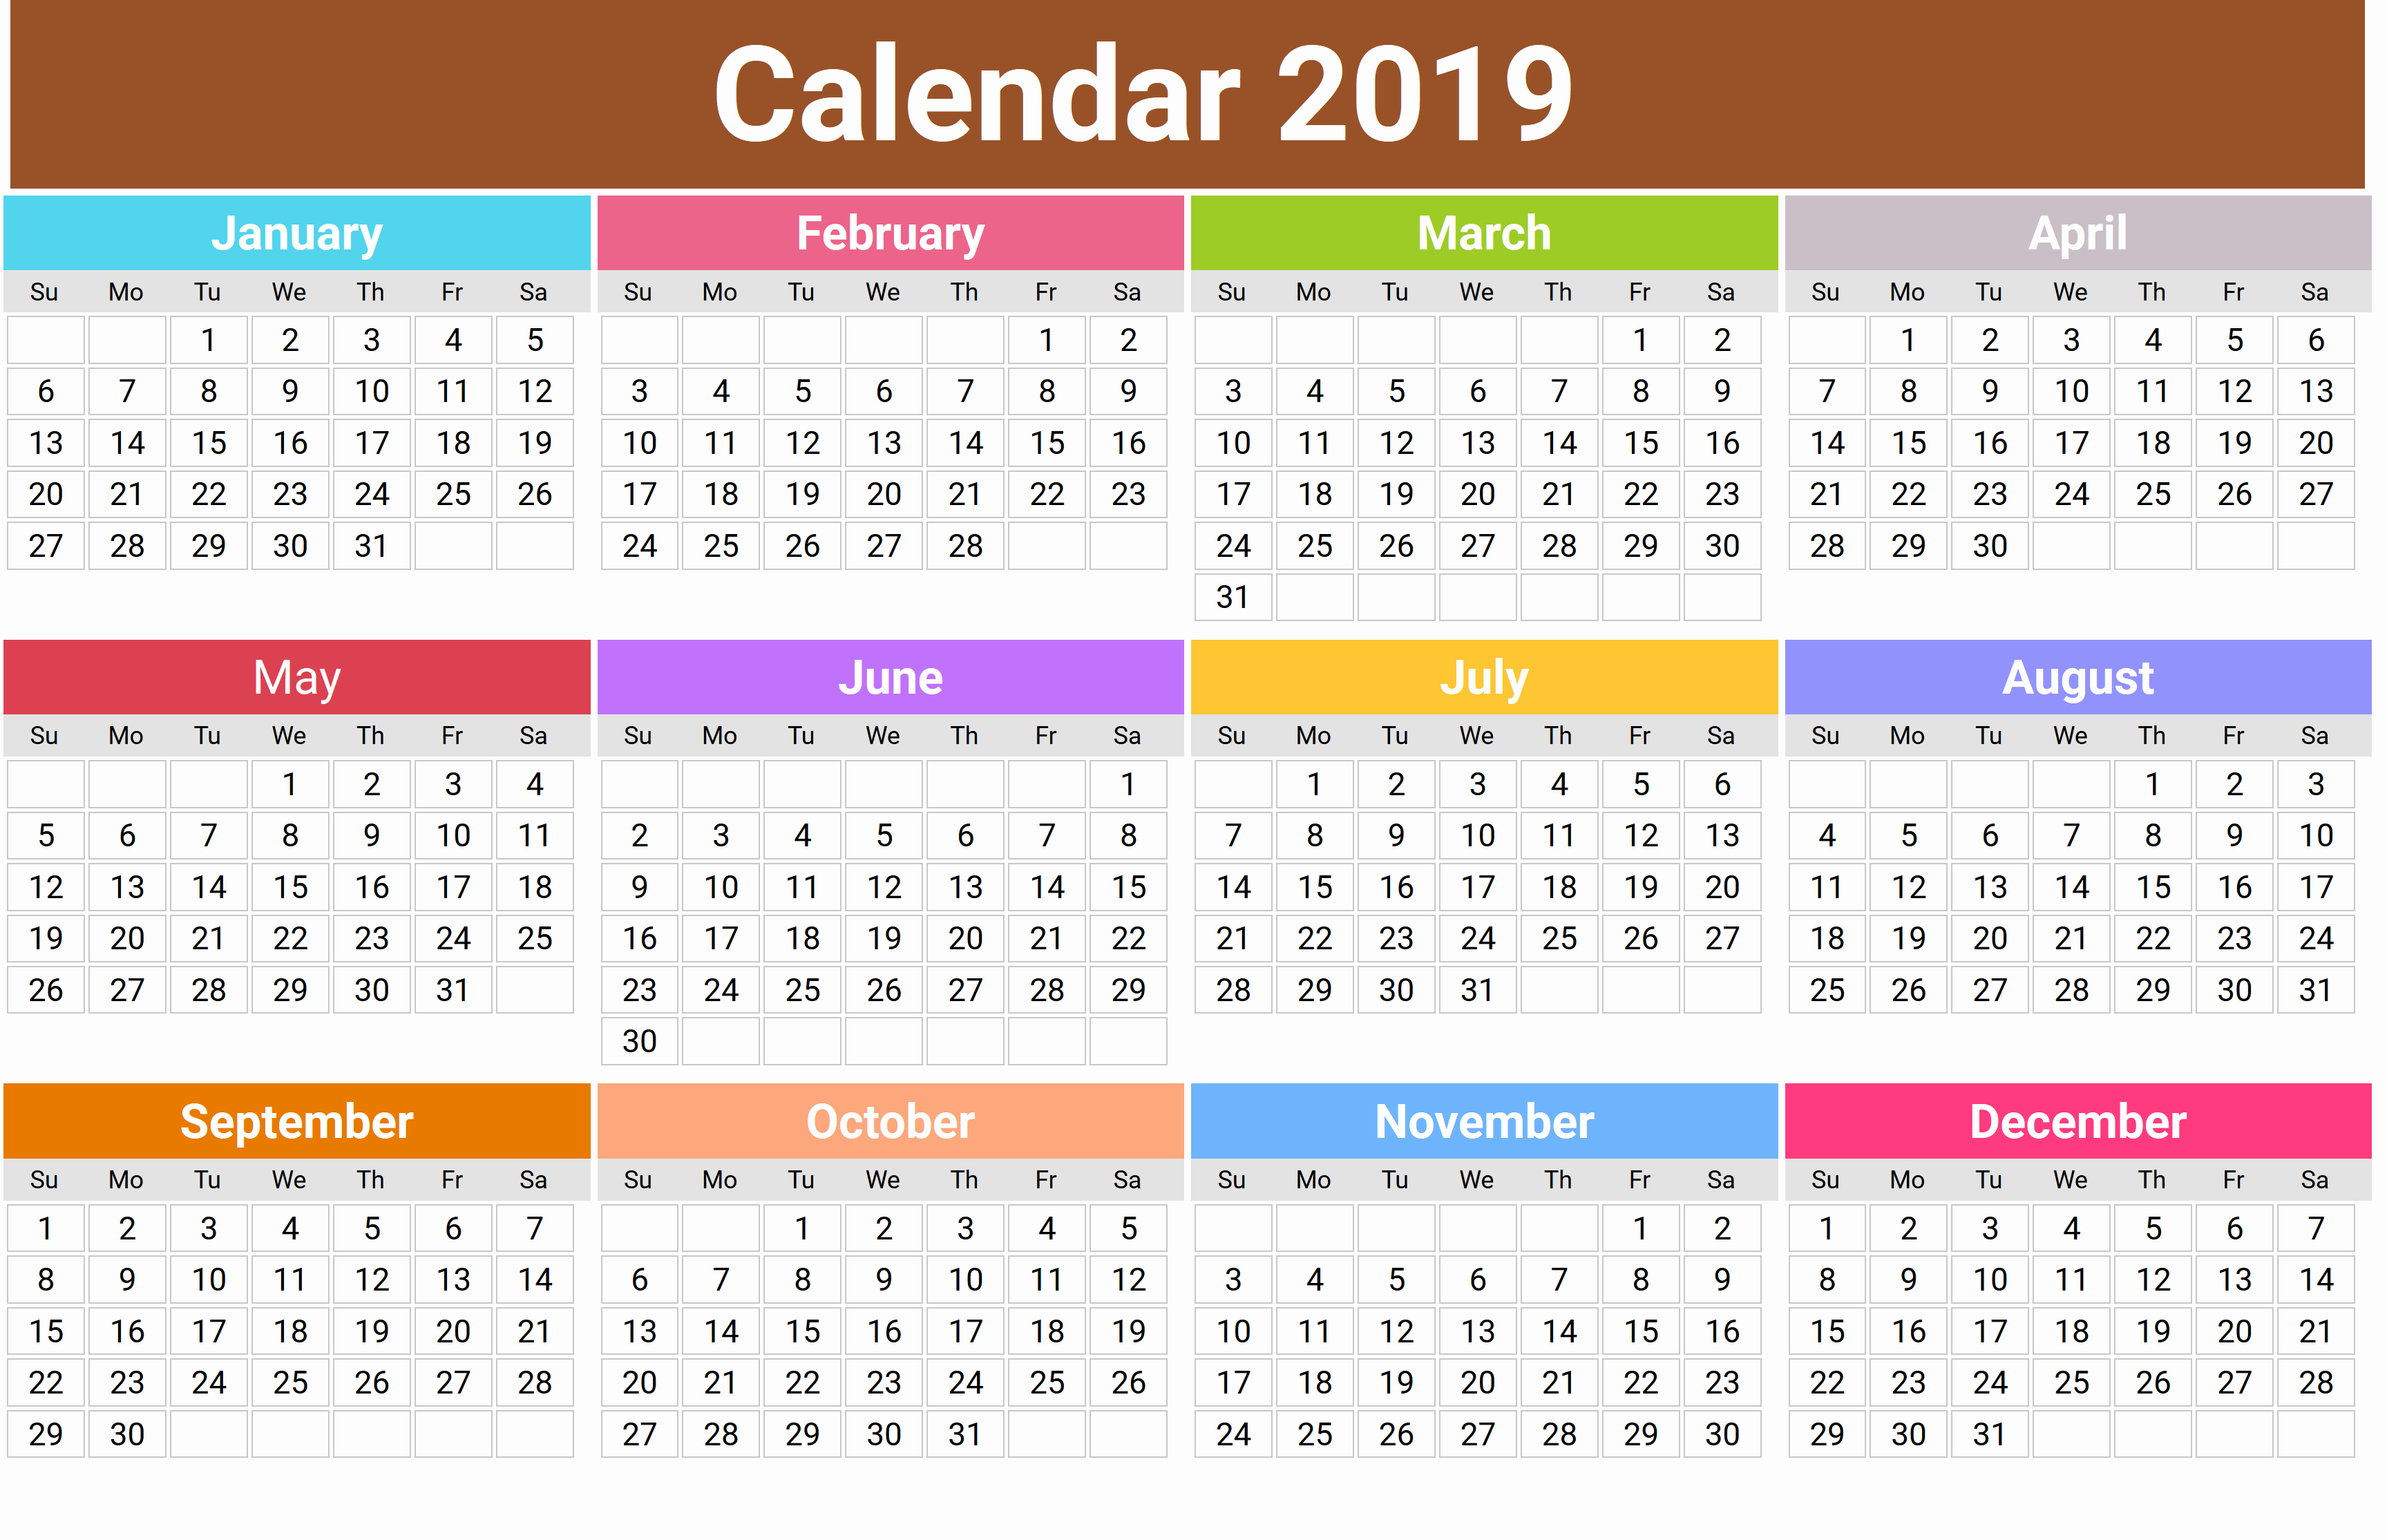 2019 Printable Calendar by Month Fresh Cute 2019 Monthly Calendar